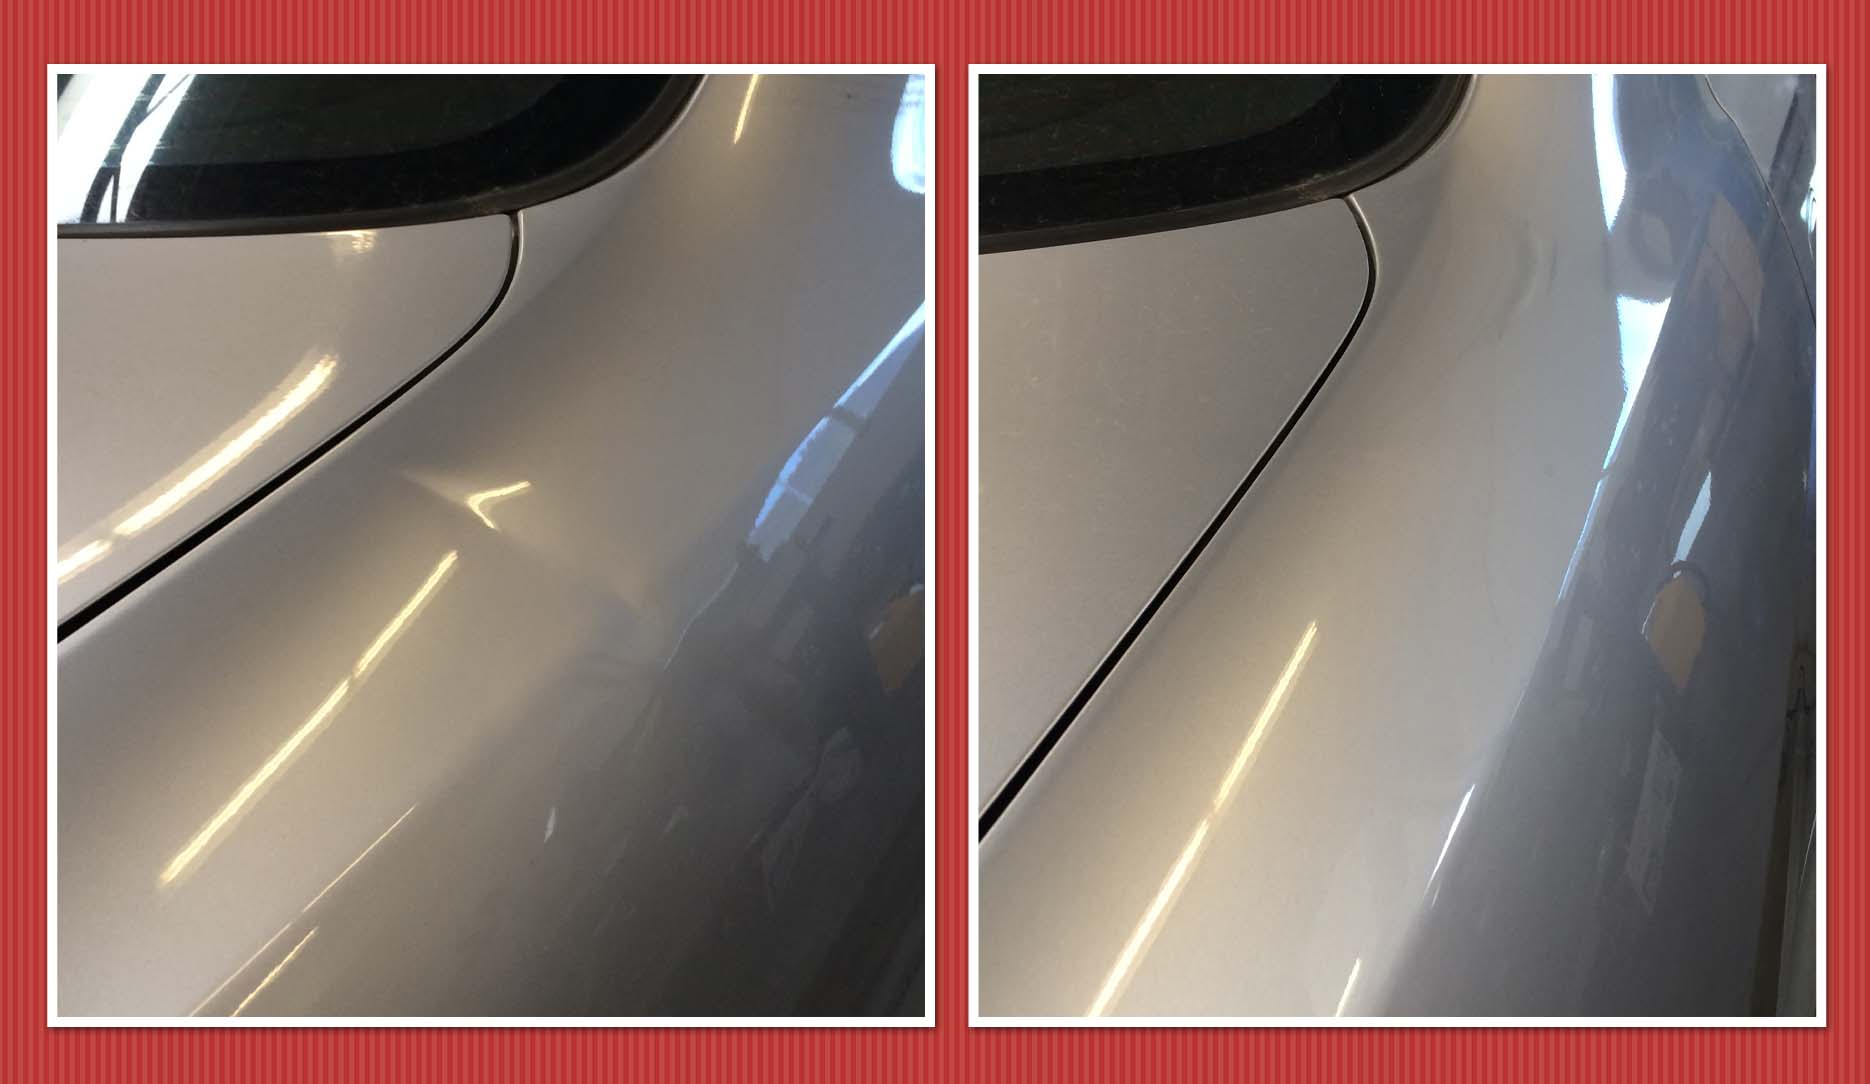 Honda Accord Dent Repair RRQ Ladder The Dalles Before After